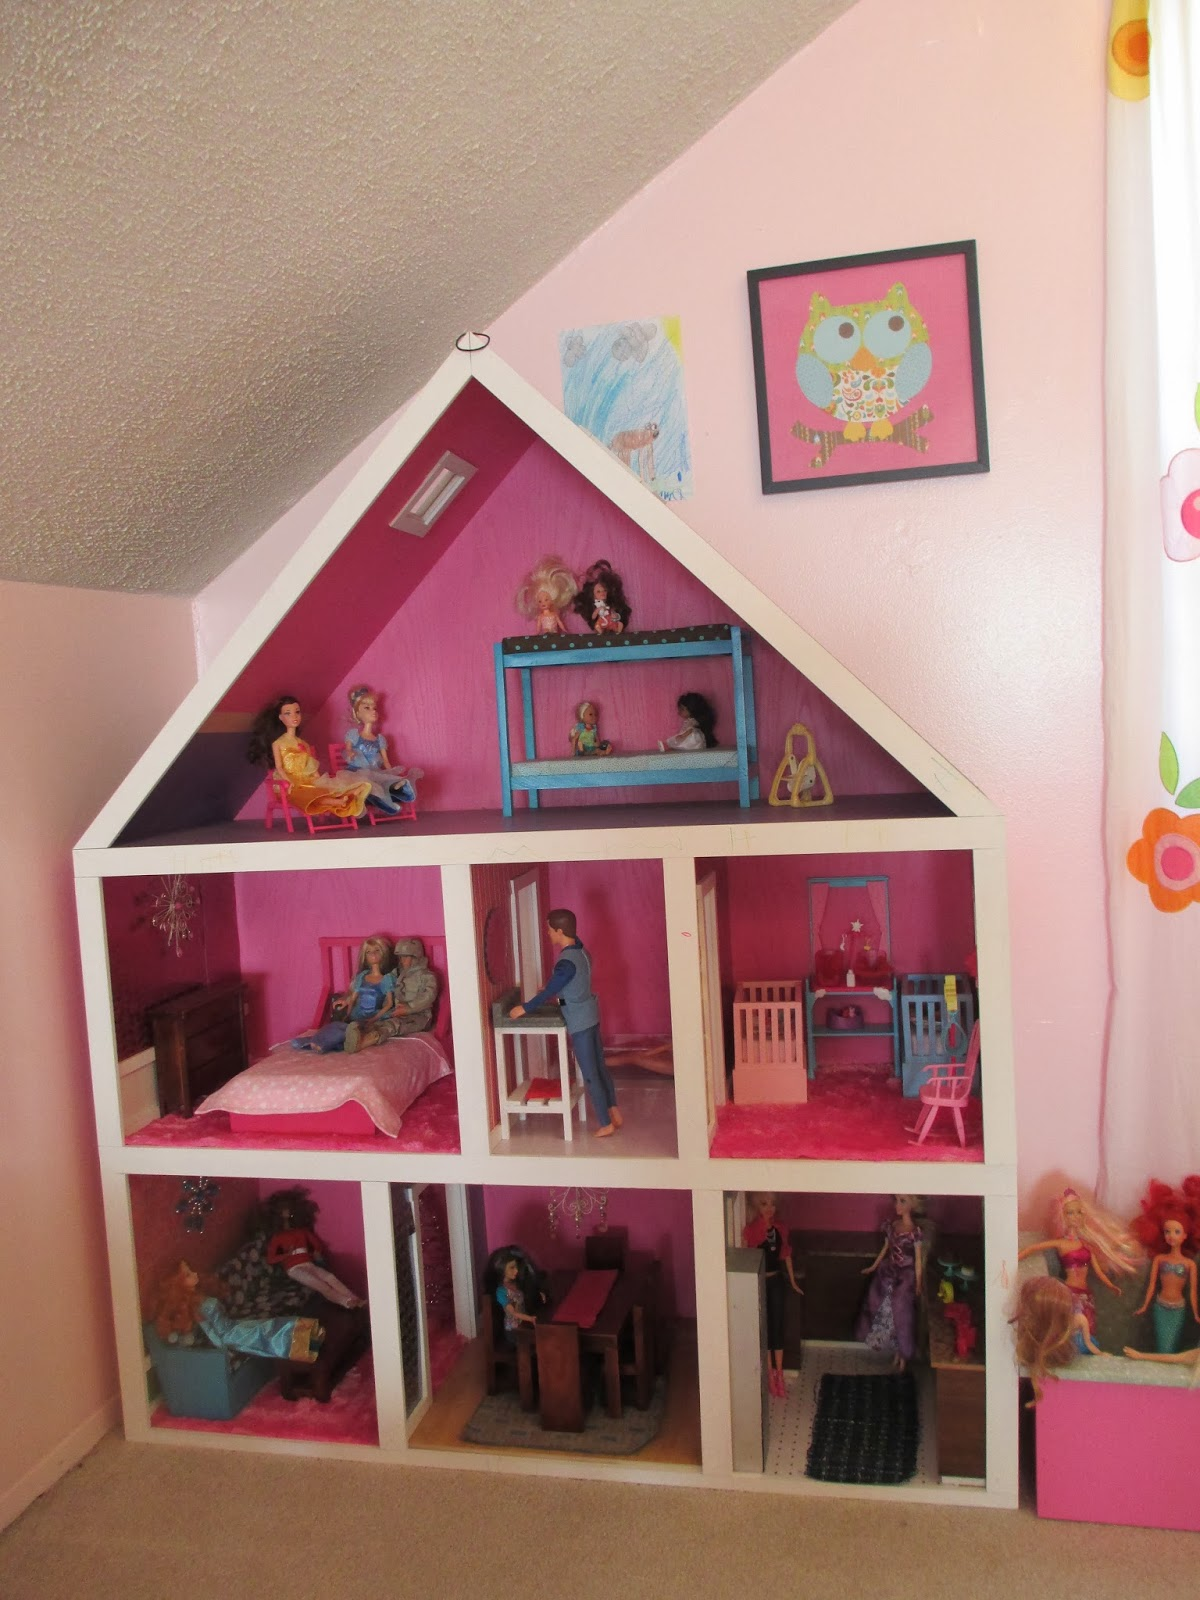 Make Your Own Barbie Furniture Property Brilliant Kruse's Workshop Building For Barbie On A Budget Decorating Inspiration